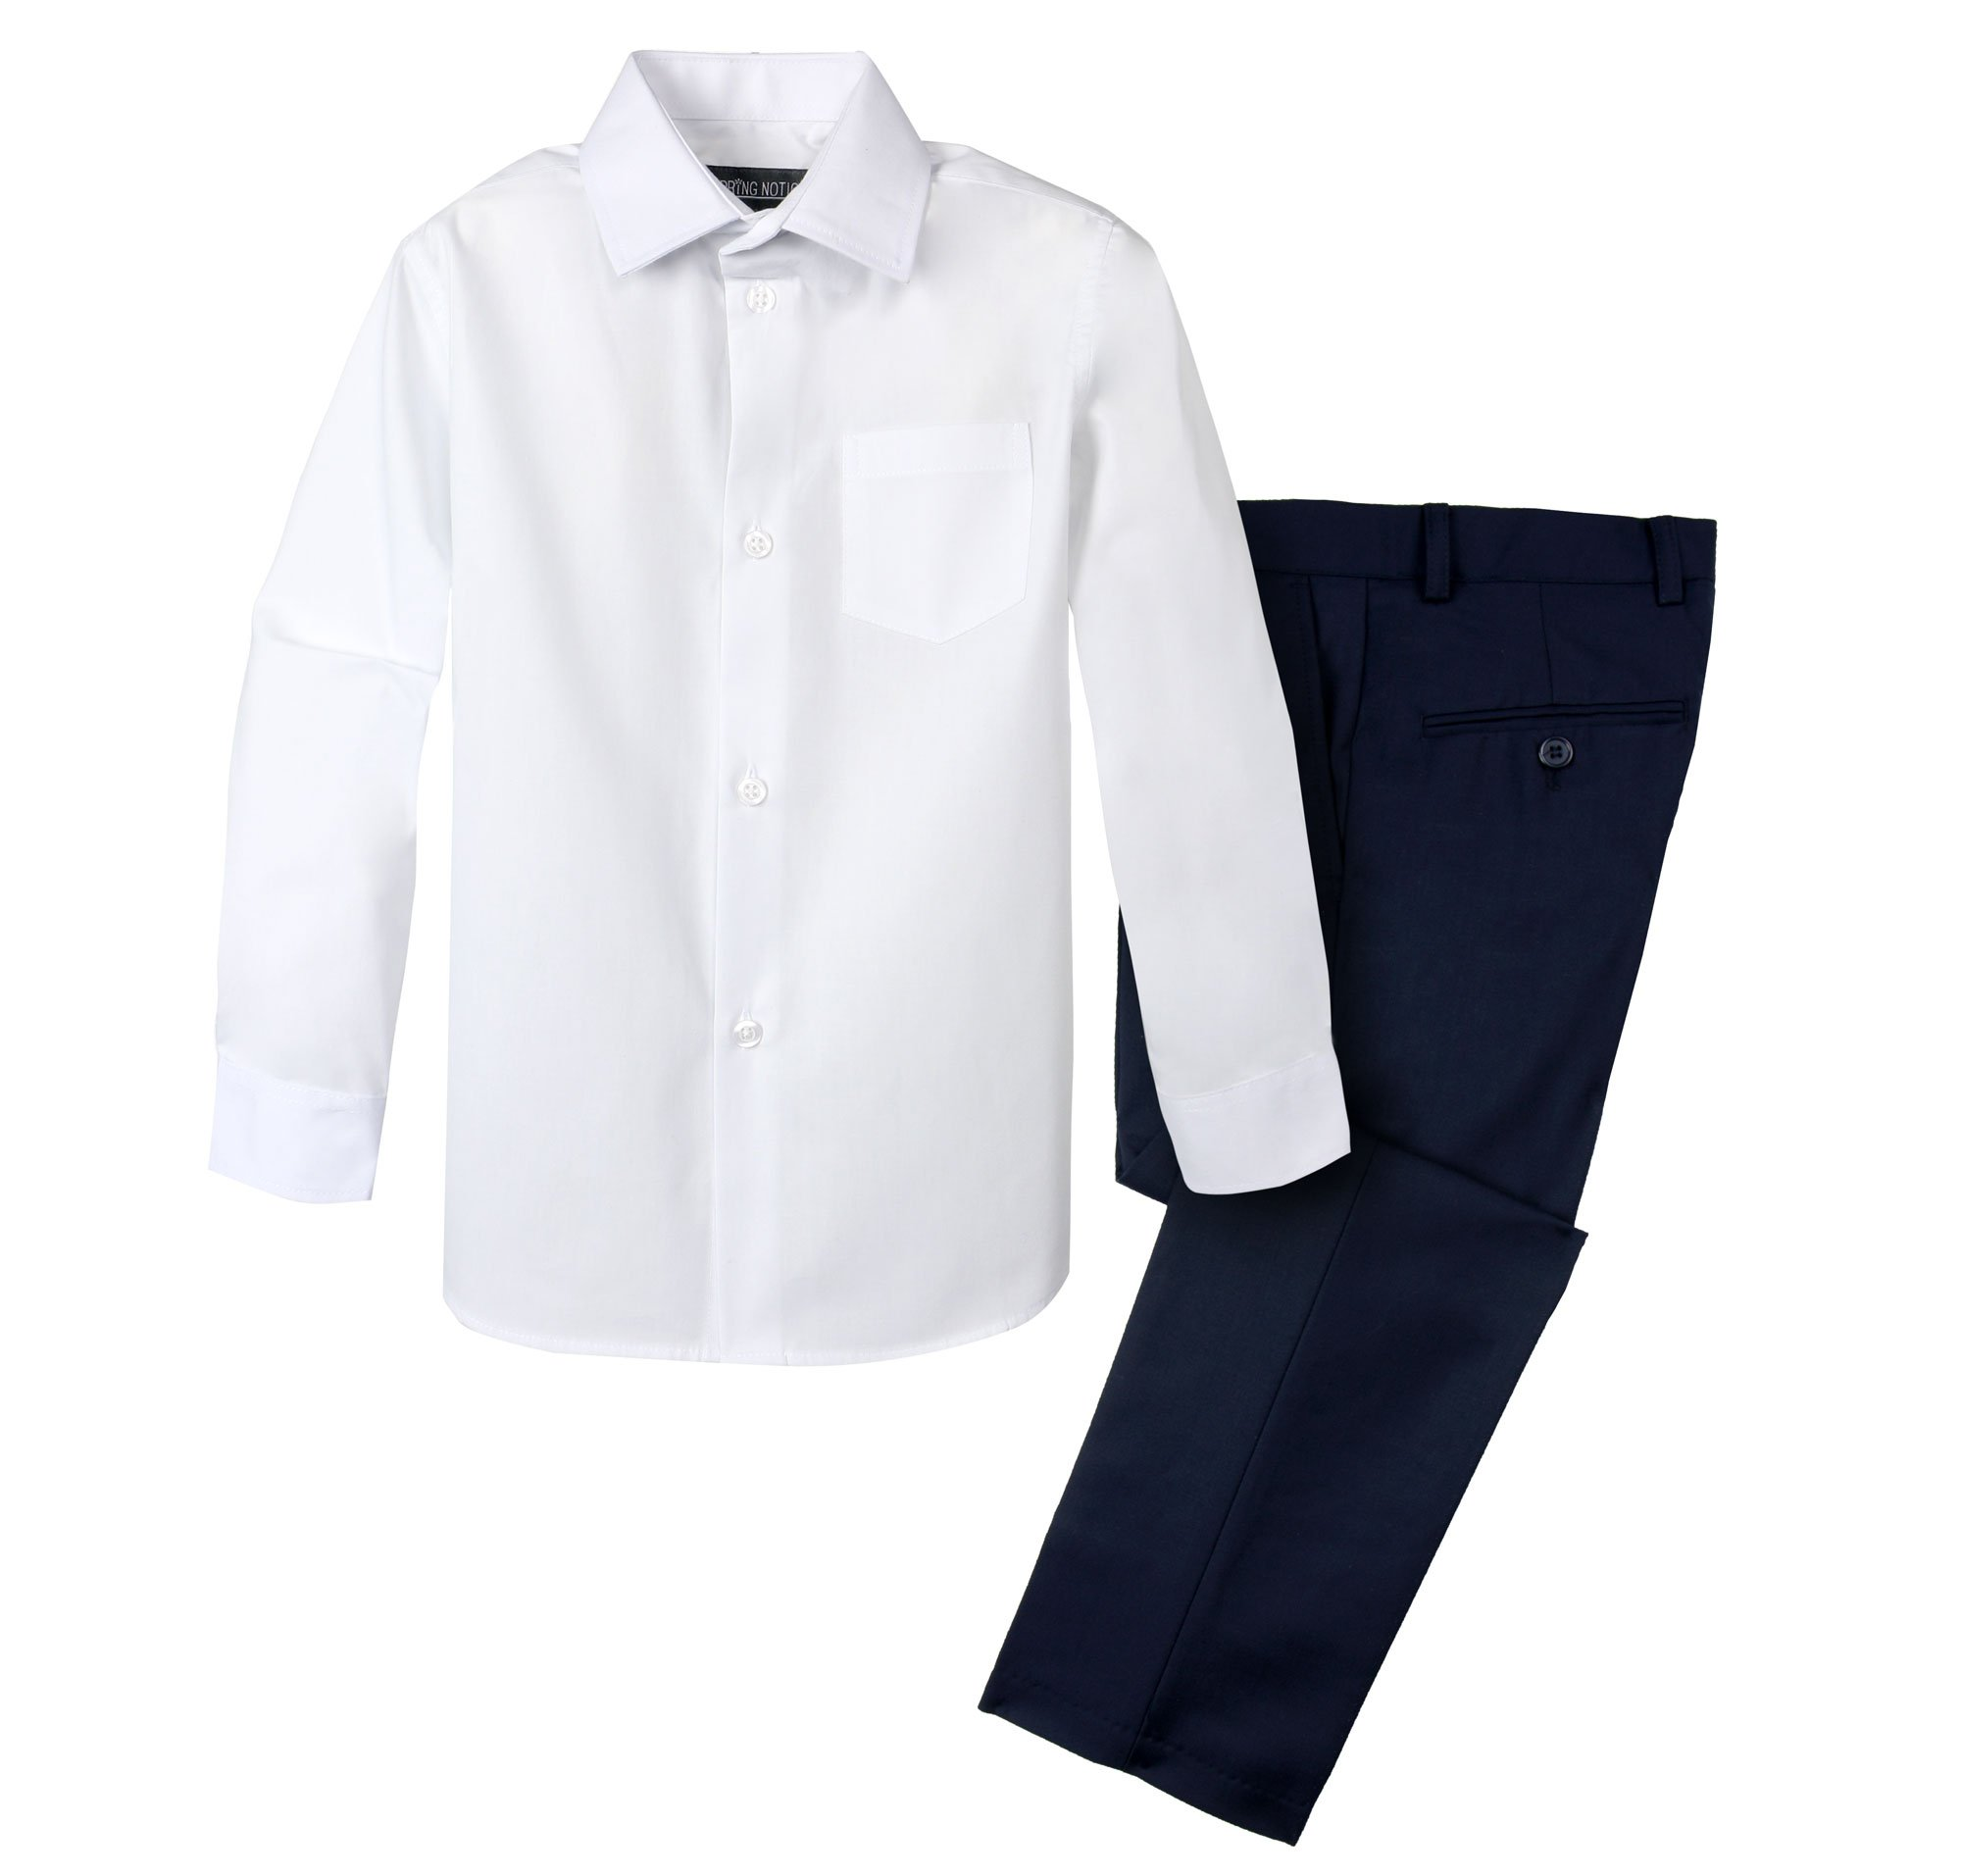 Spring Notion Boys' Dress Pants and Shirt 8 Navy/White